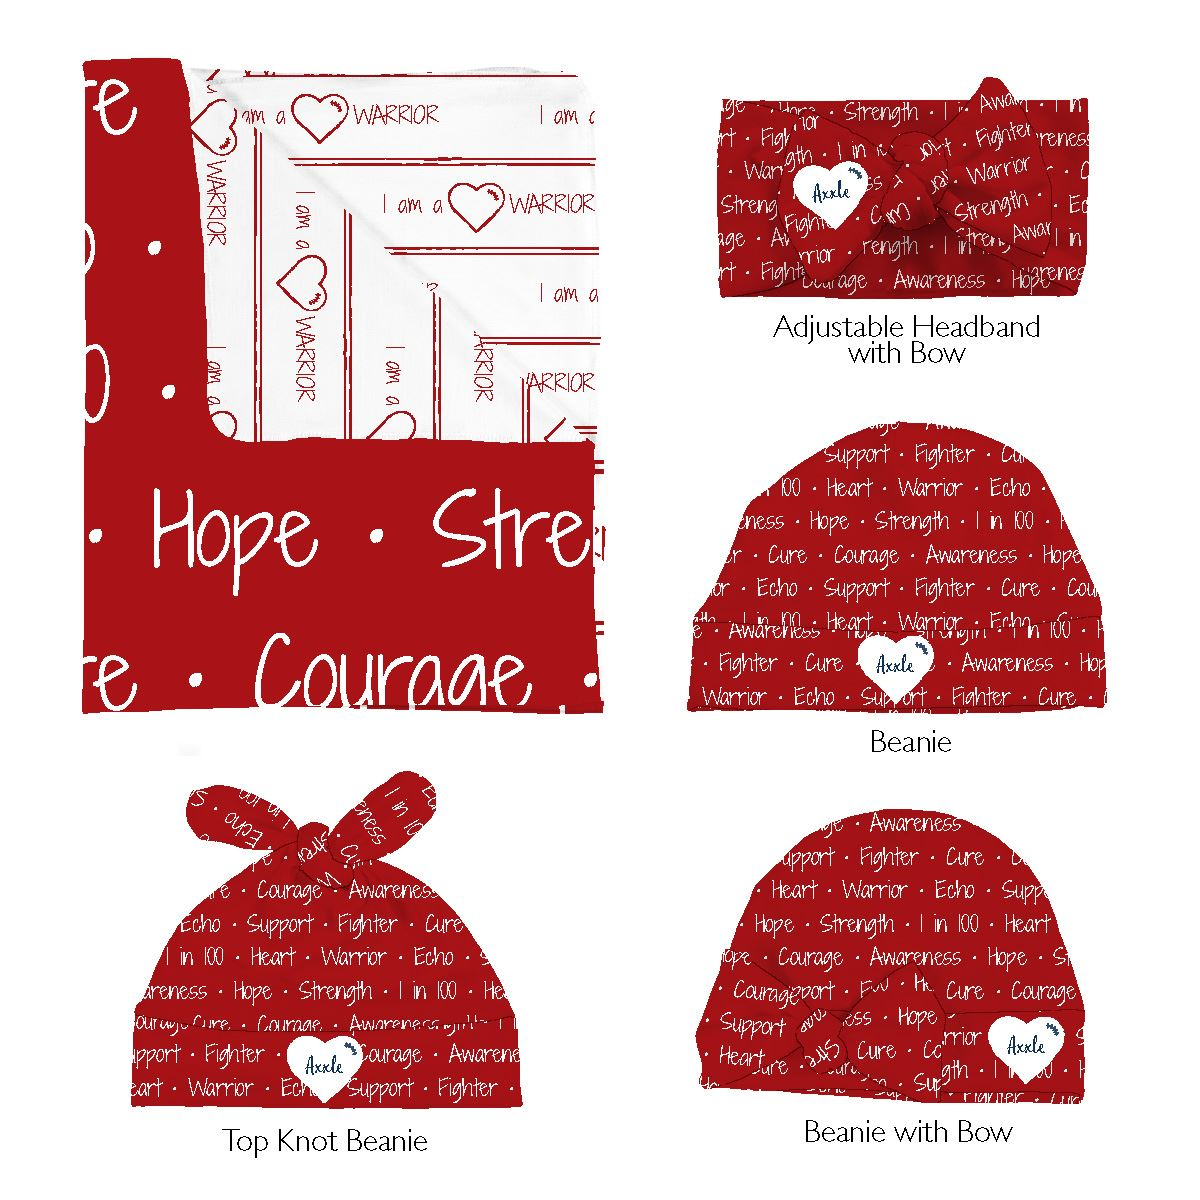 Axxle's Heart Warrior | Swaddle and Hat Set